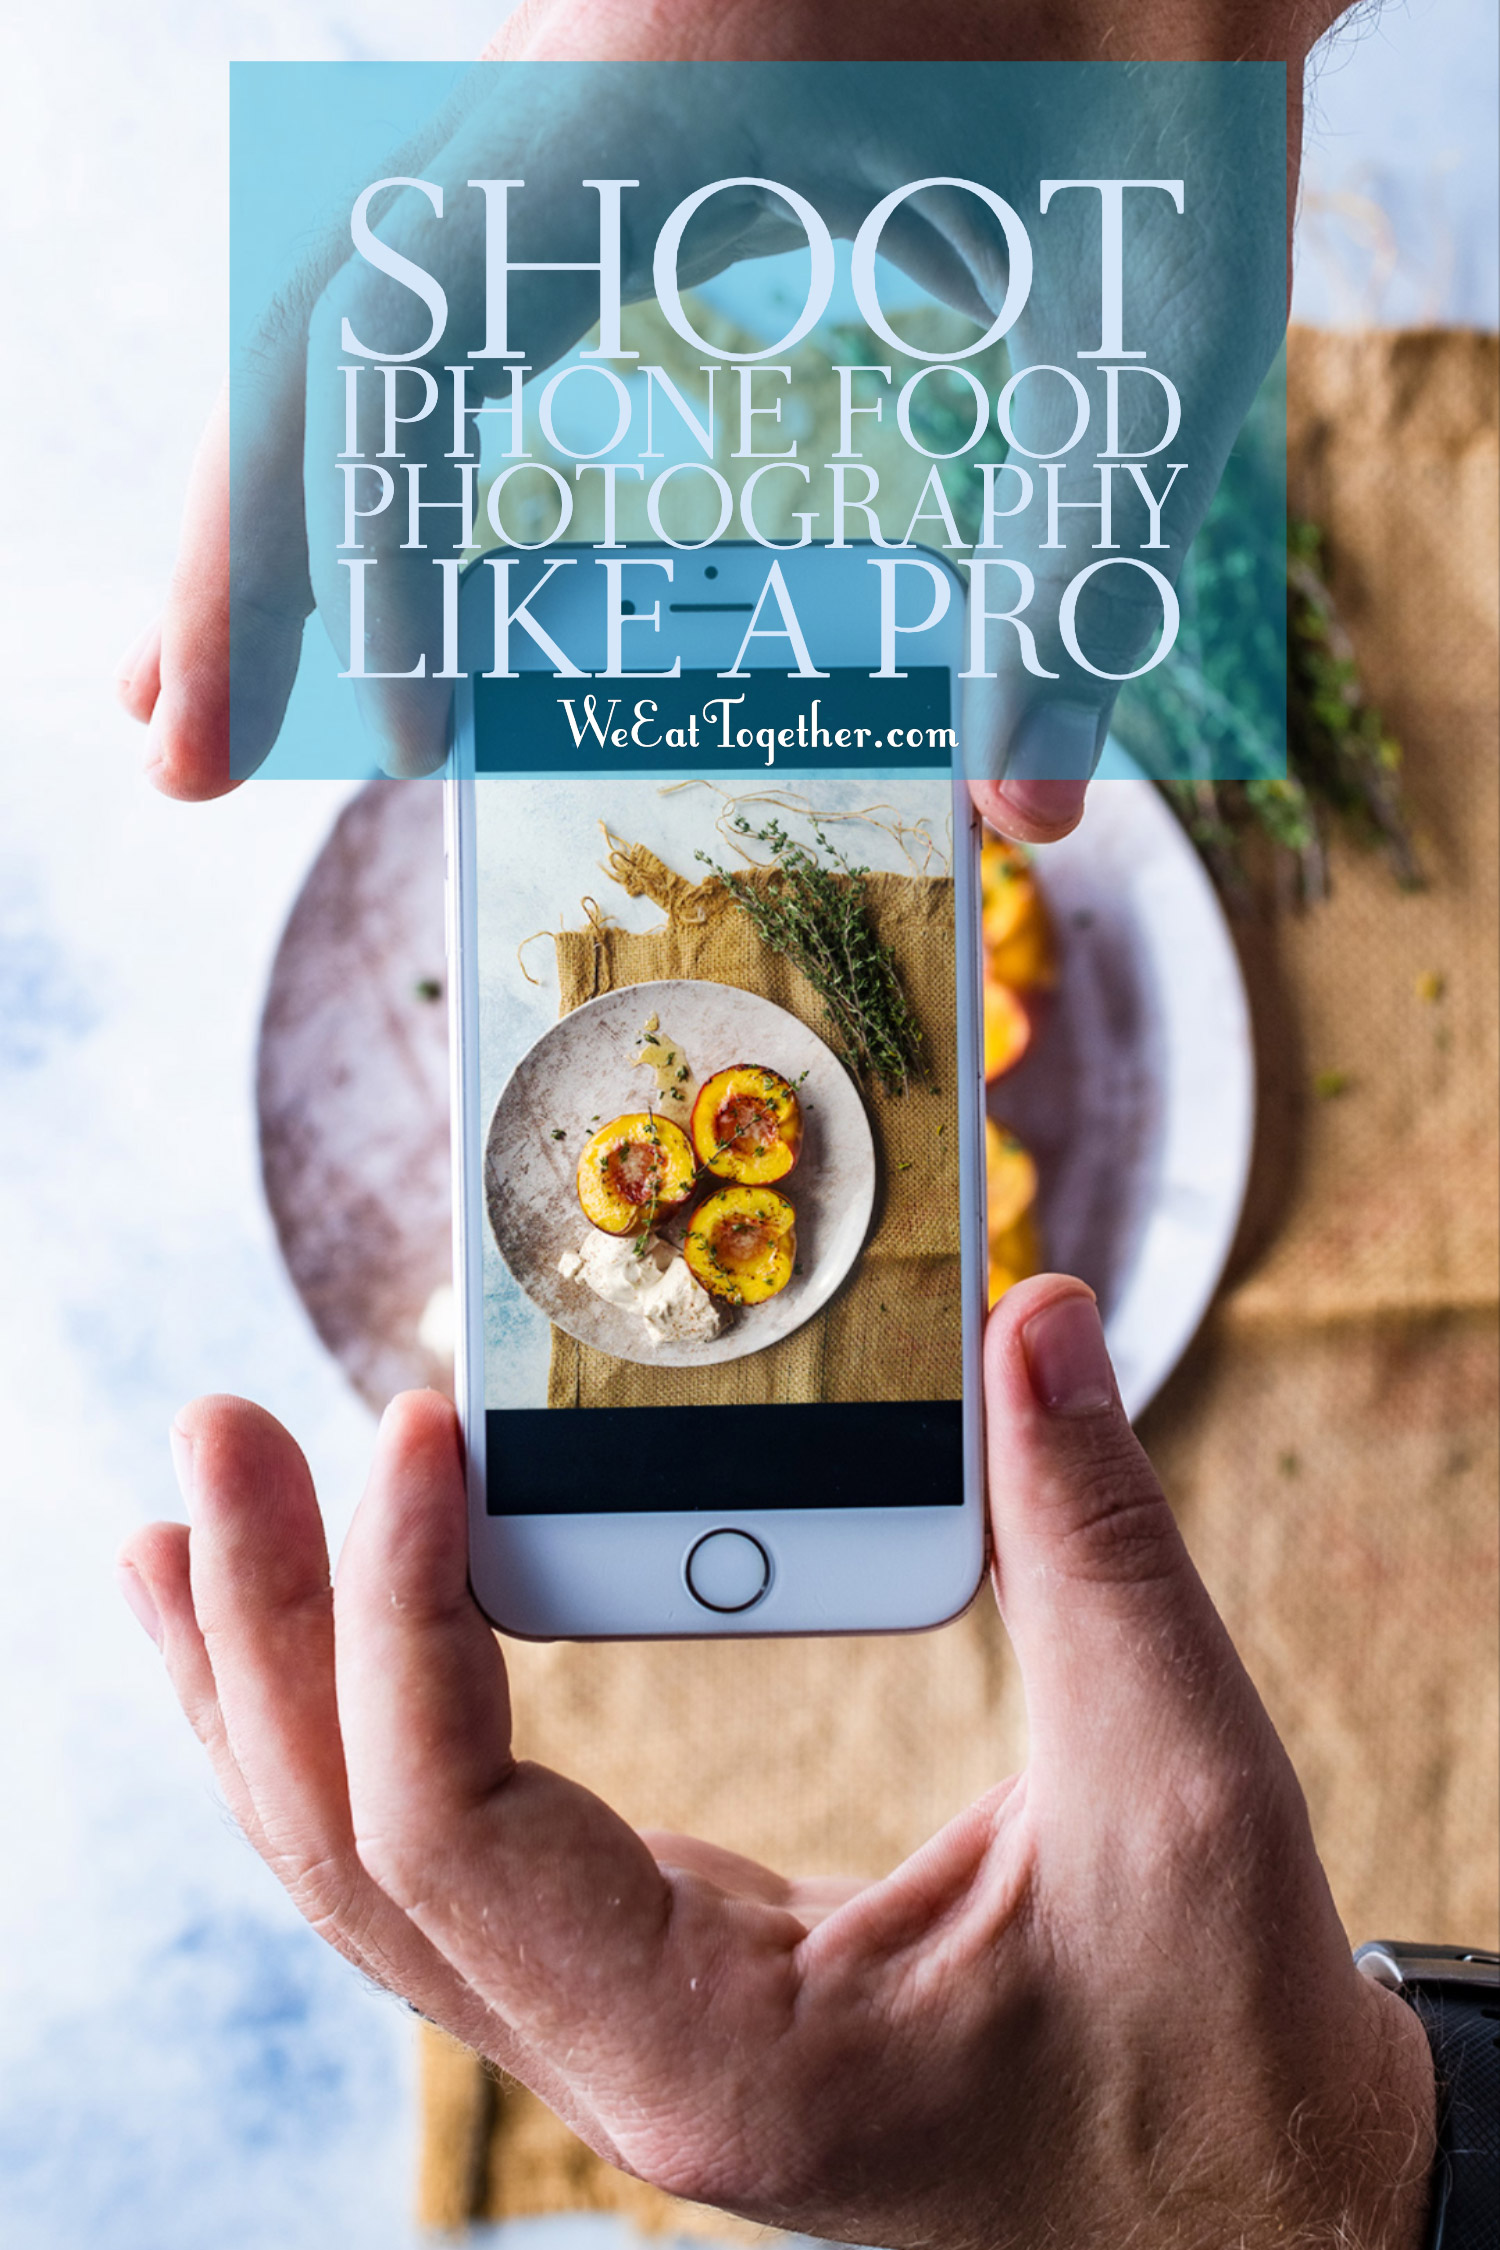 Amazing tips for lighting, camera settings, editing and raising your iPhone food photography to the next level! Make tasty food photos with any smartphone. Dive into some cool gear plus the number 1 camera and editing app.